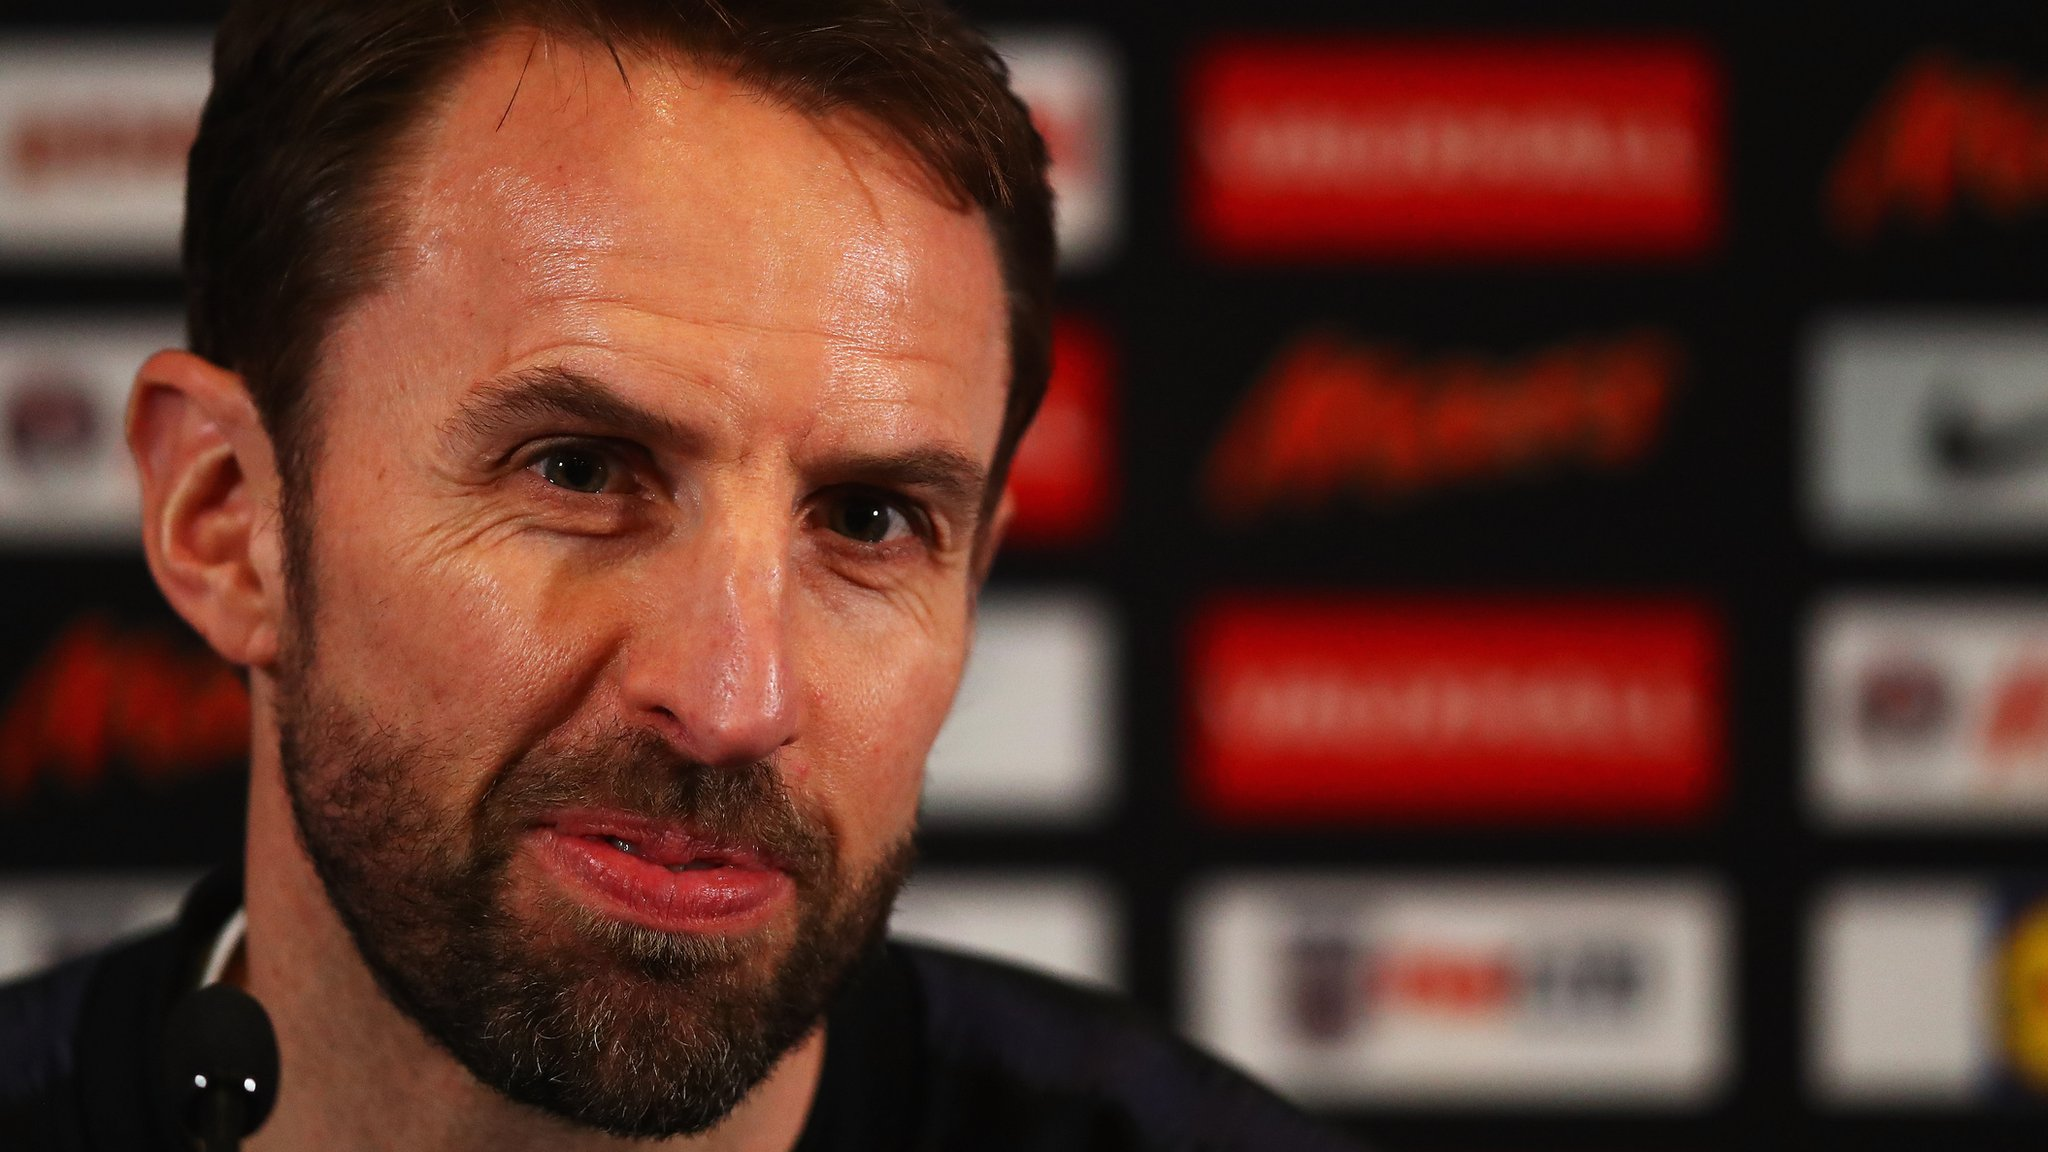 World Cup 2018: England boss Gareth Southgate says country must address racism